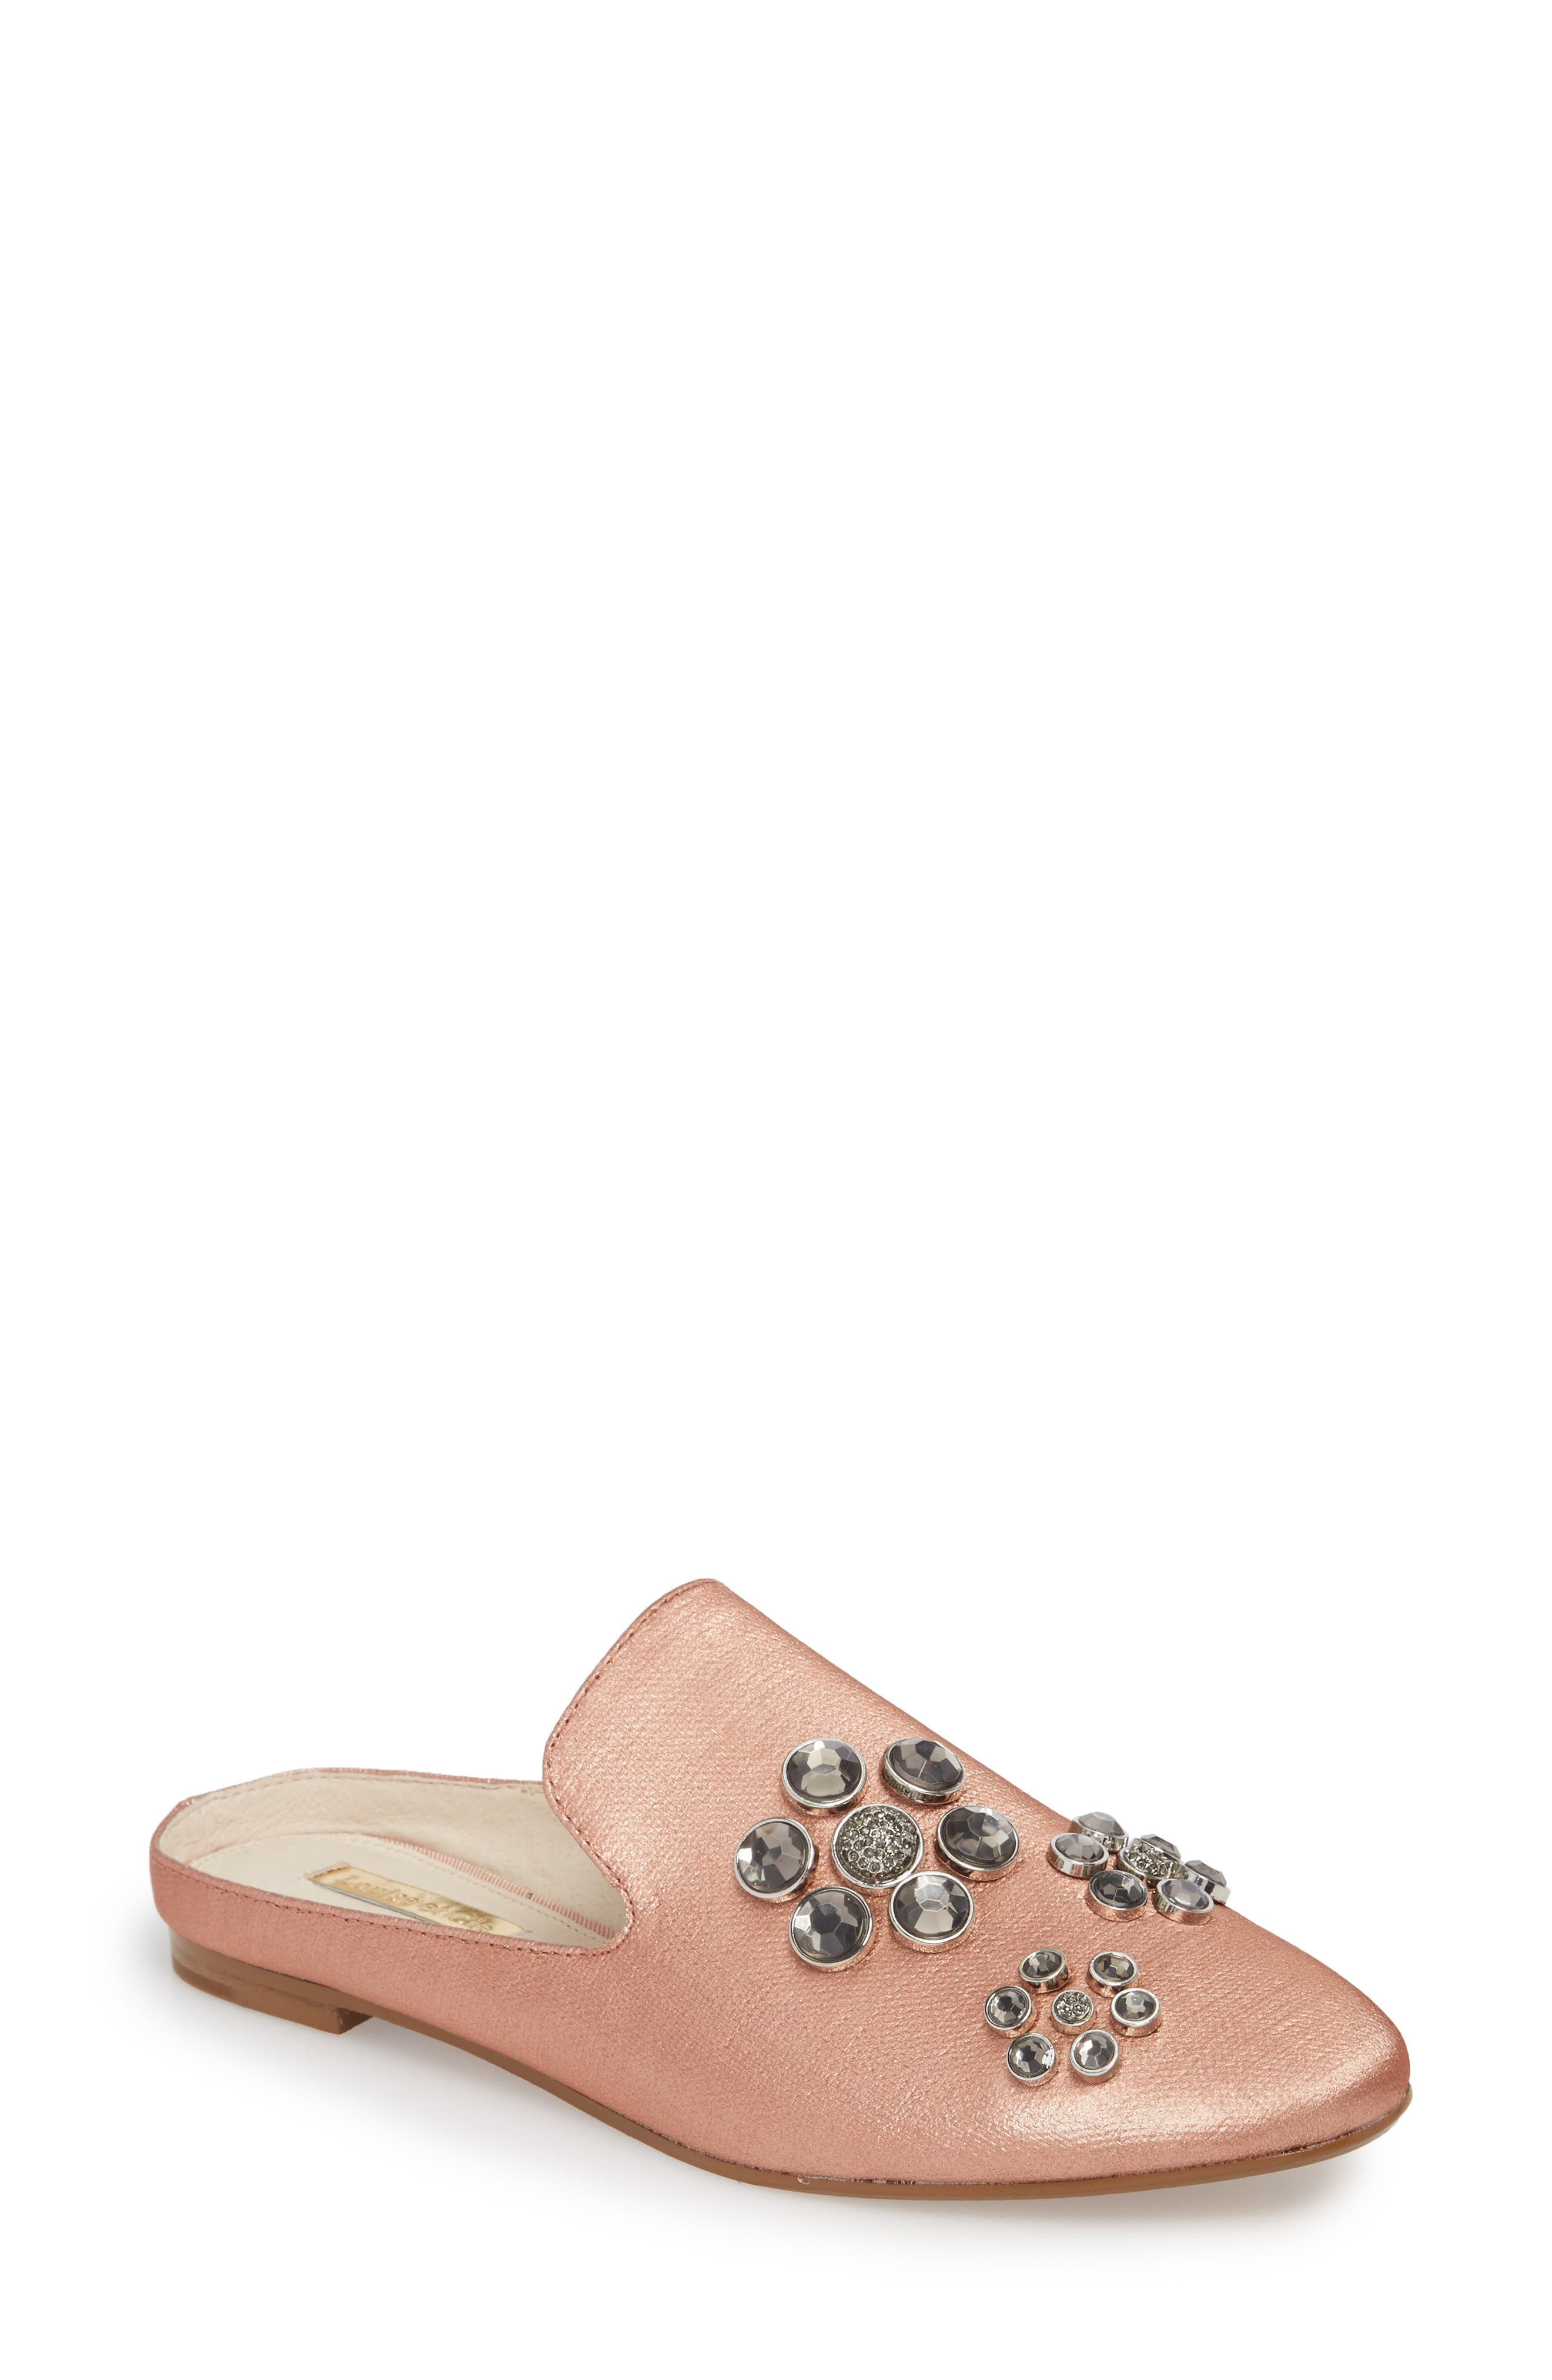 Felix II Crystal Flower Loafer Mule,                             Main thumbnail 4, color,